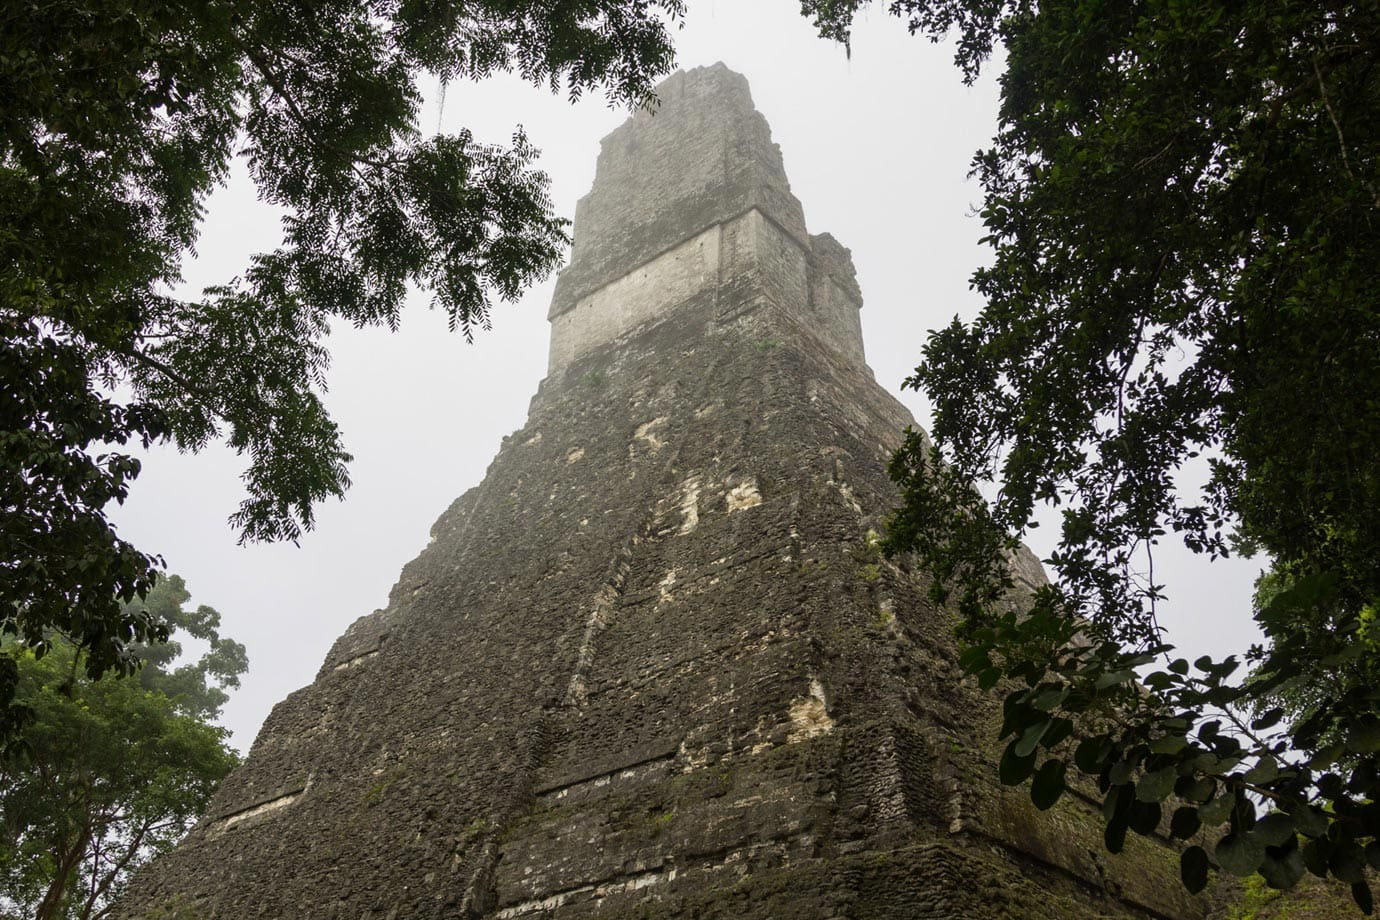 These pyramids, built by a civilisation long gone, stand sentinel, the only memento anyone was ever here